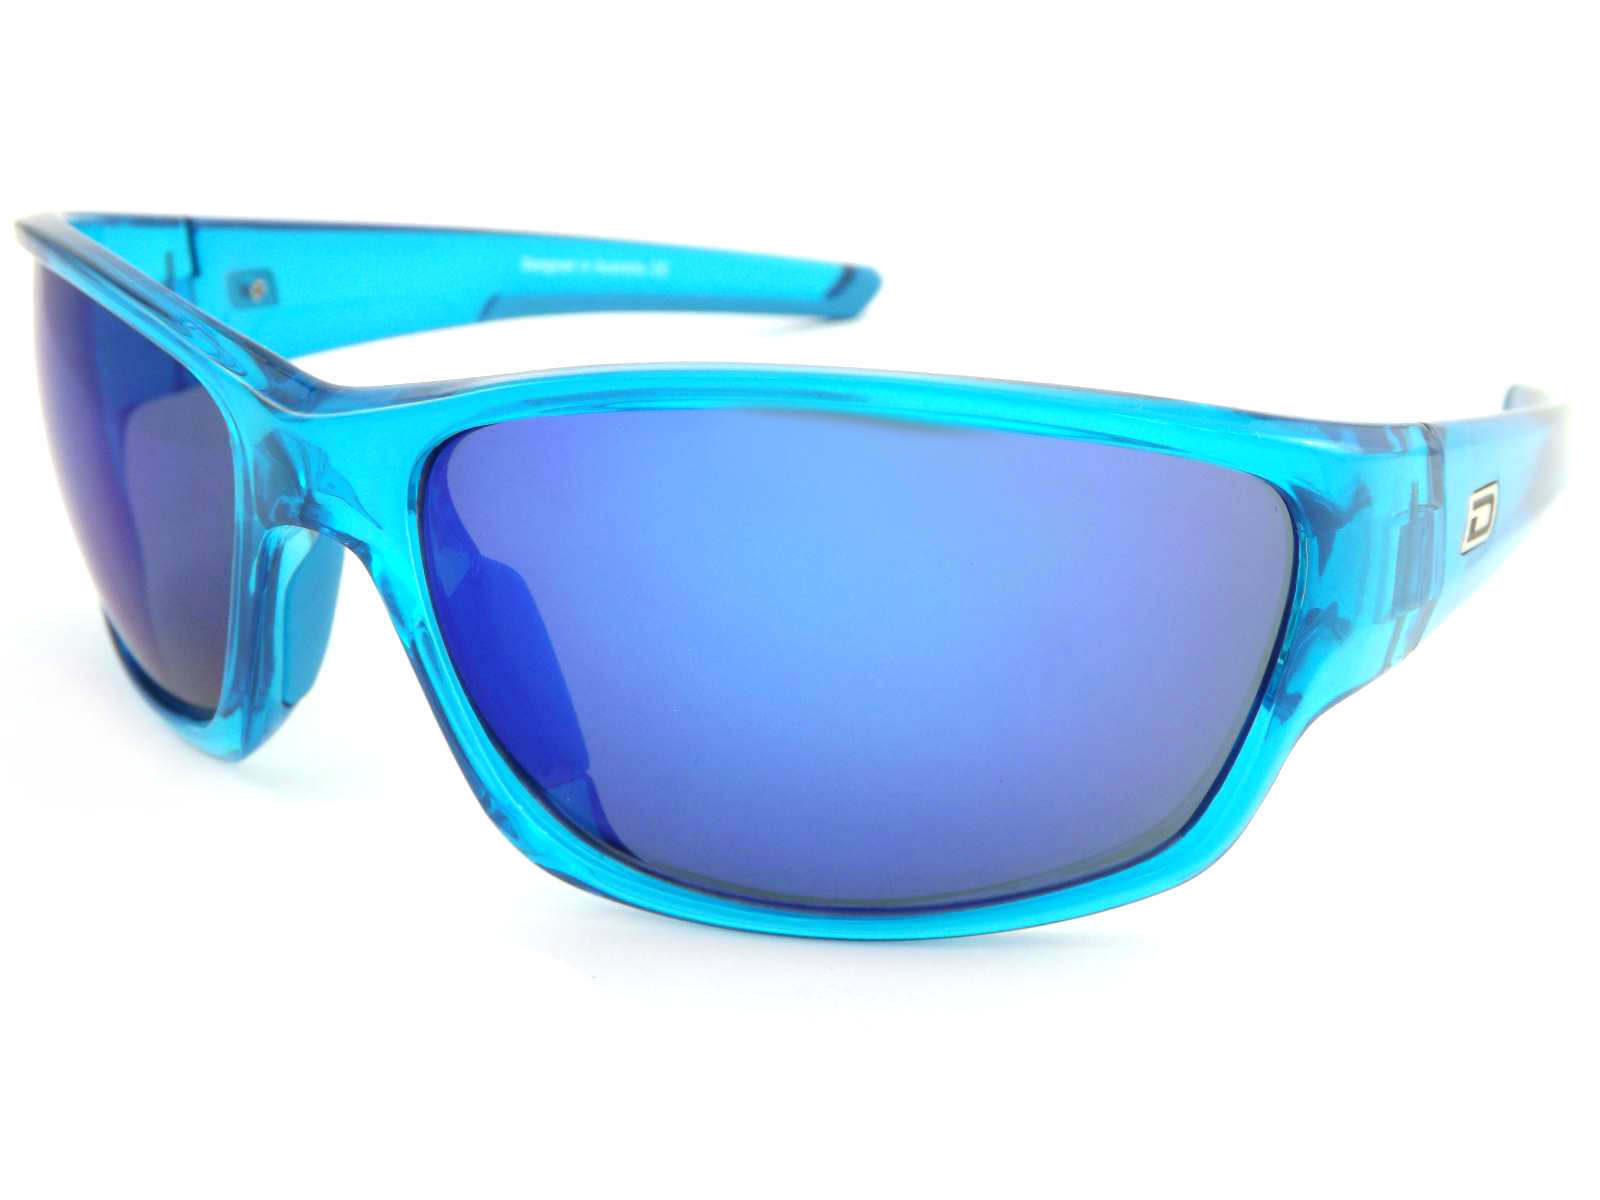 DIRTY DOG - CHAIN Sunglasses Crystal Blau  Ice Blau Mirror Lenses 58072 | Export